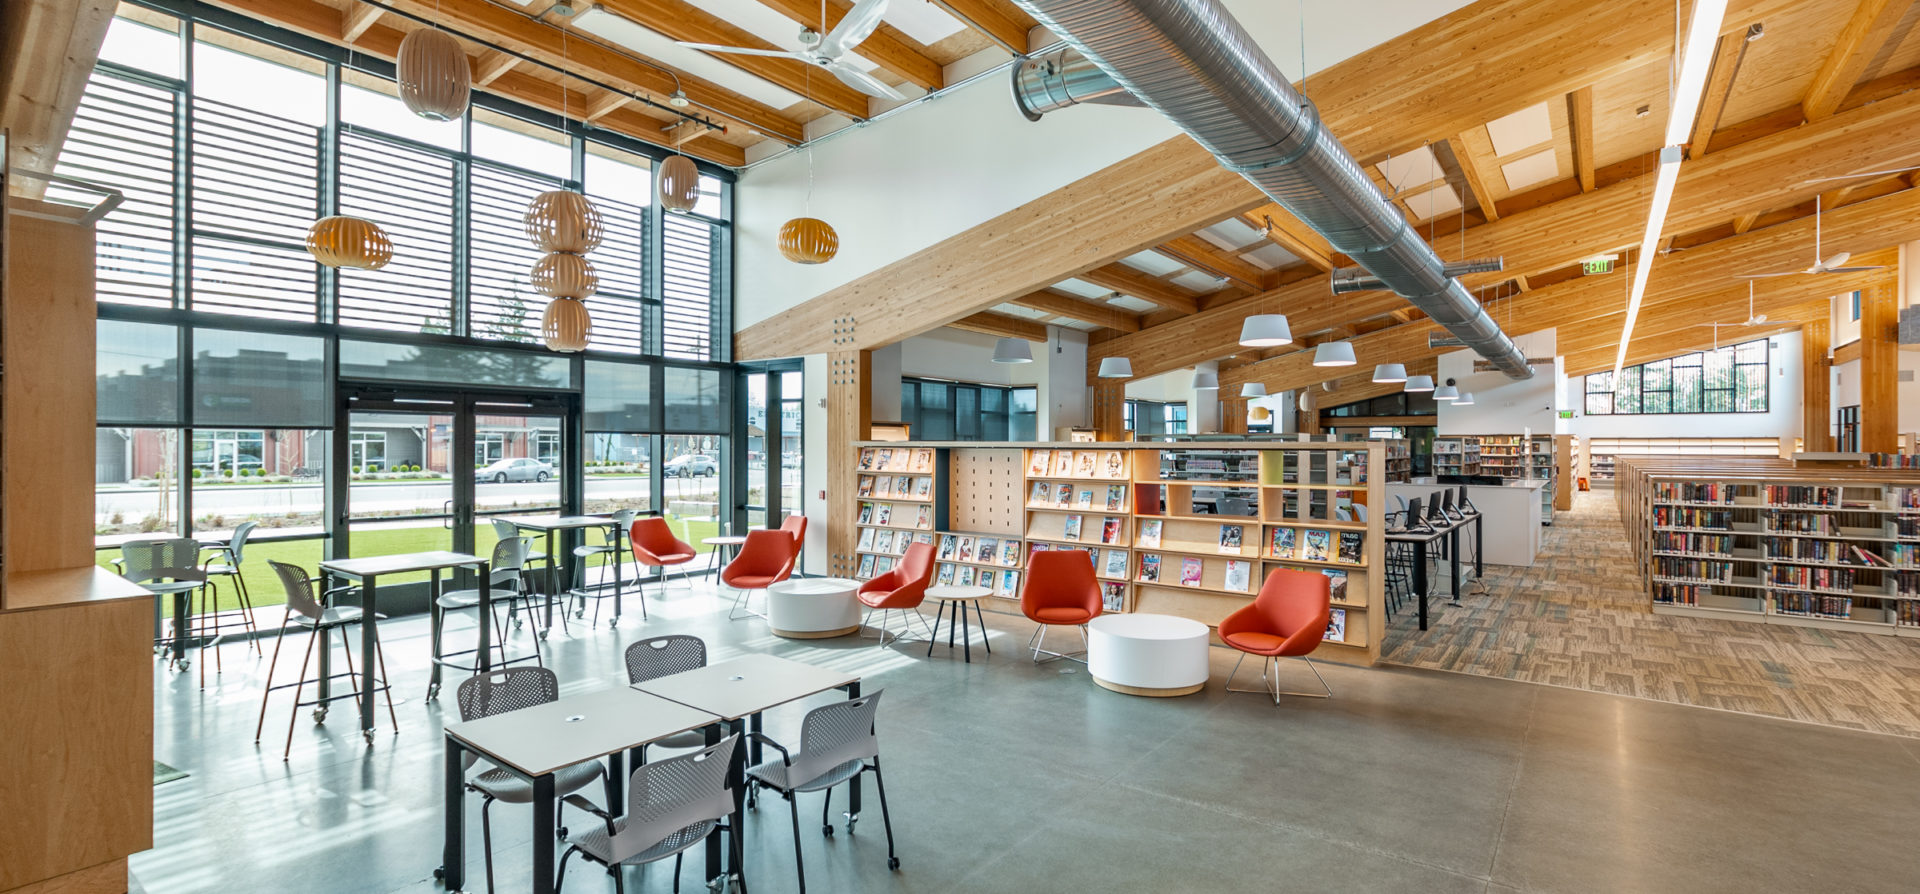 Sedro-Woolley Public Library